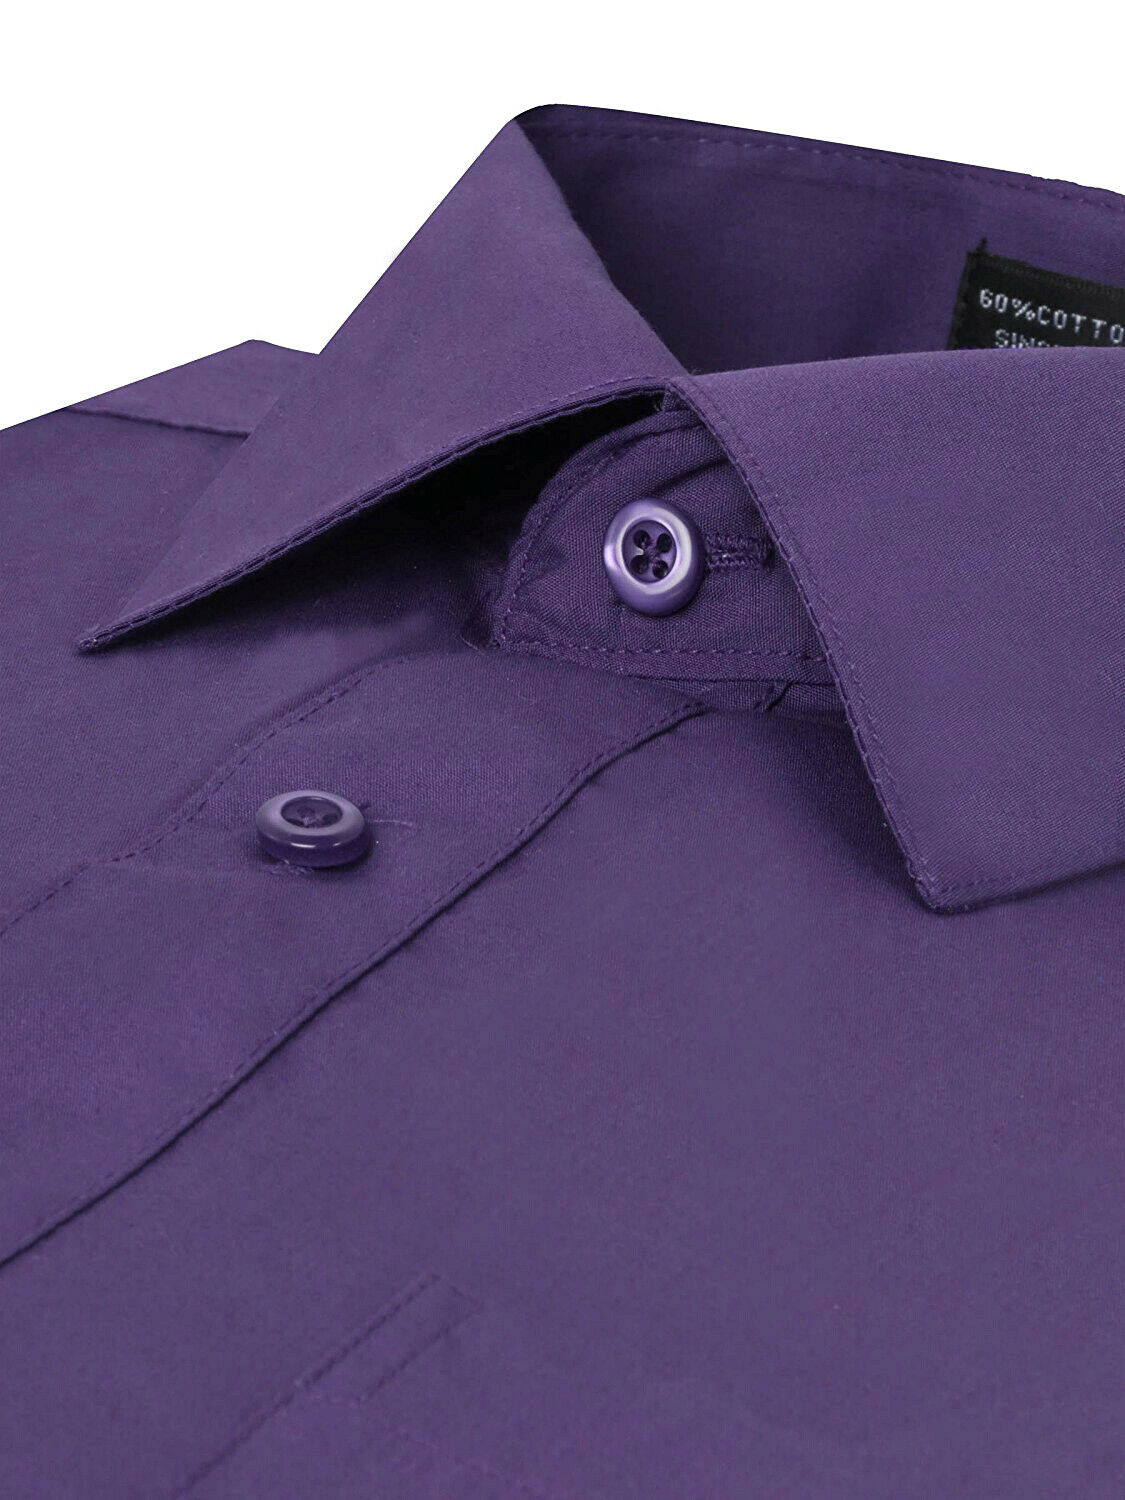 Omega-Italy-Men-039-s-Premium-Slim-Fit-Button-Up-Long-Sleeve-Solid-Color-Dress-Shirt thumbnail 55